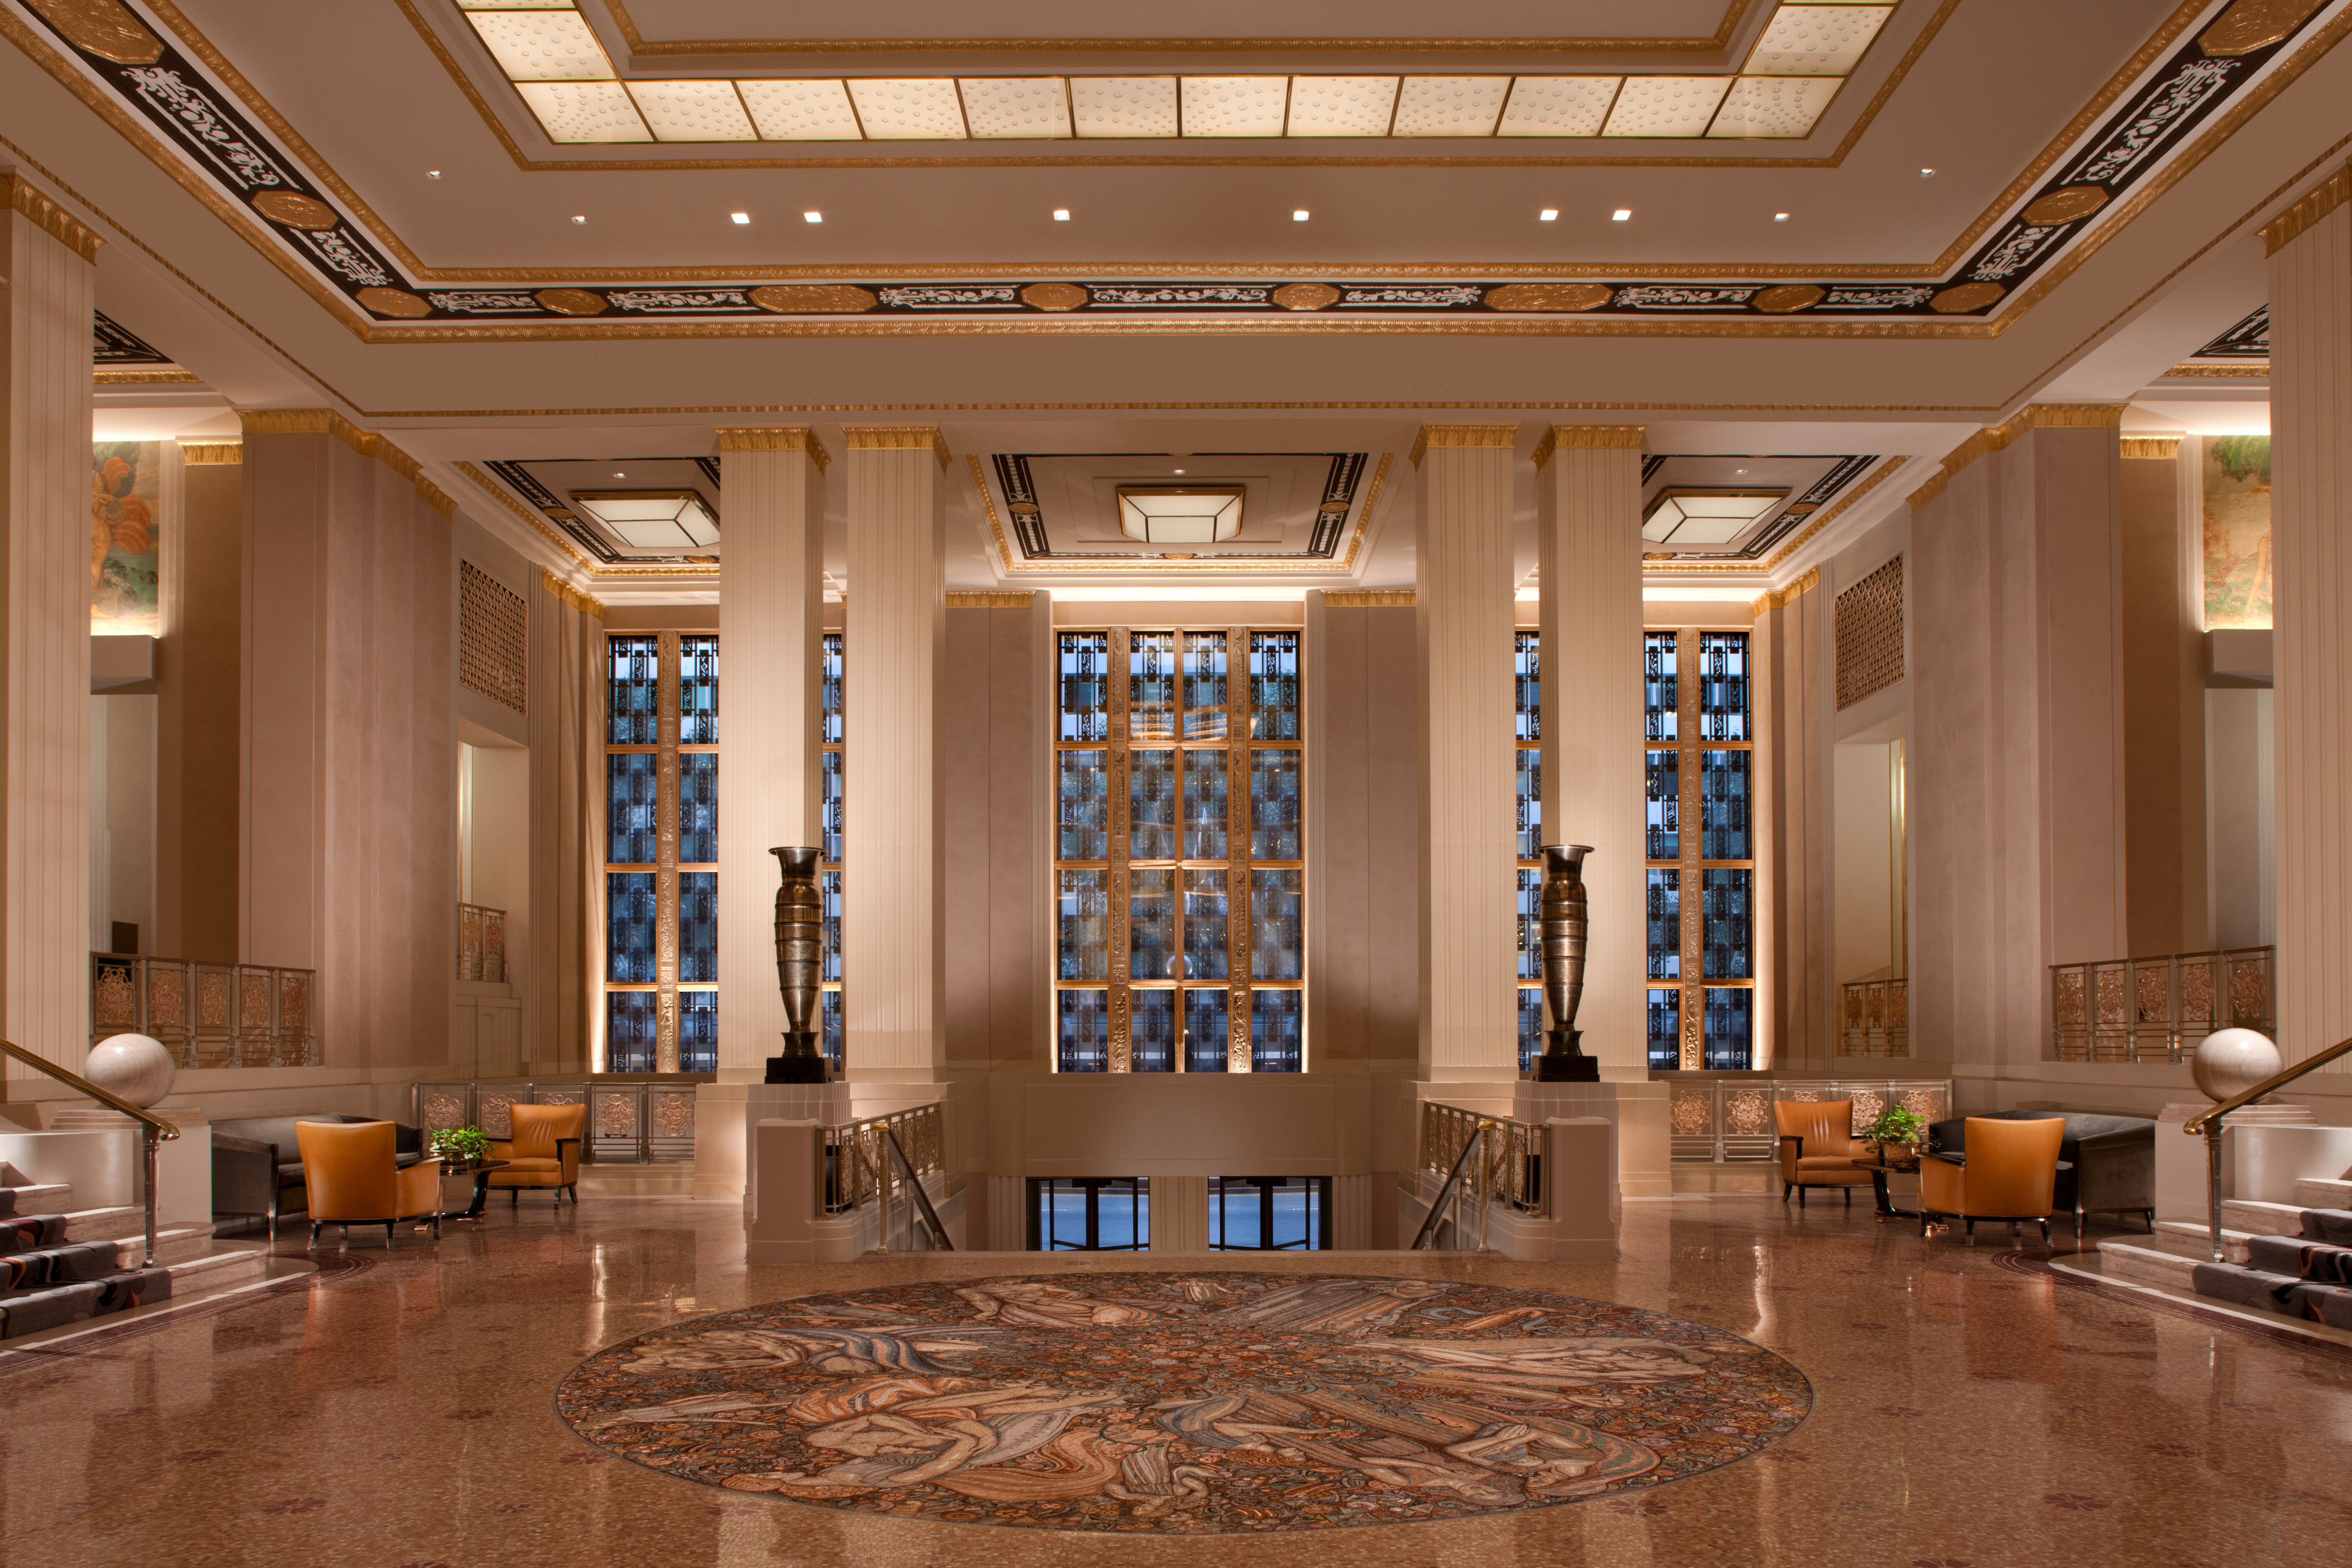 Numerous interior spaces within the hotel are designated as New York City landmarks, including the hotel's historic Grand Ballroom and iconic Park Avenue Lobby